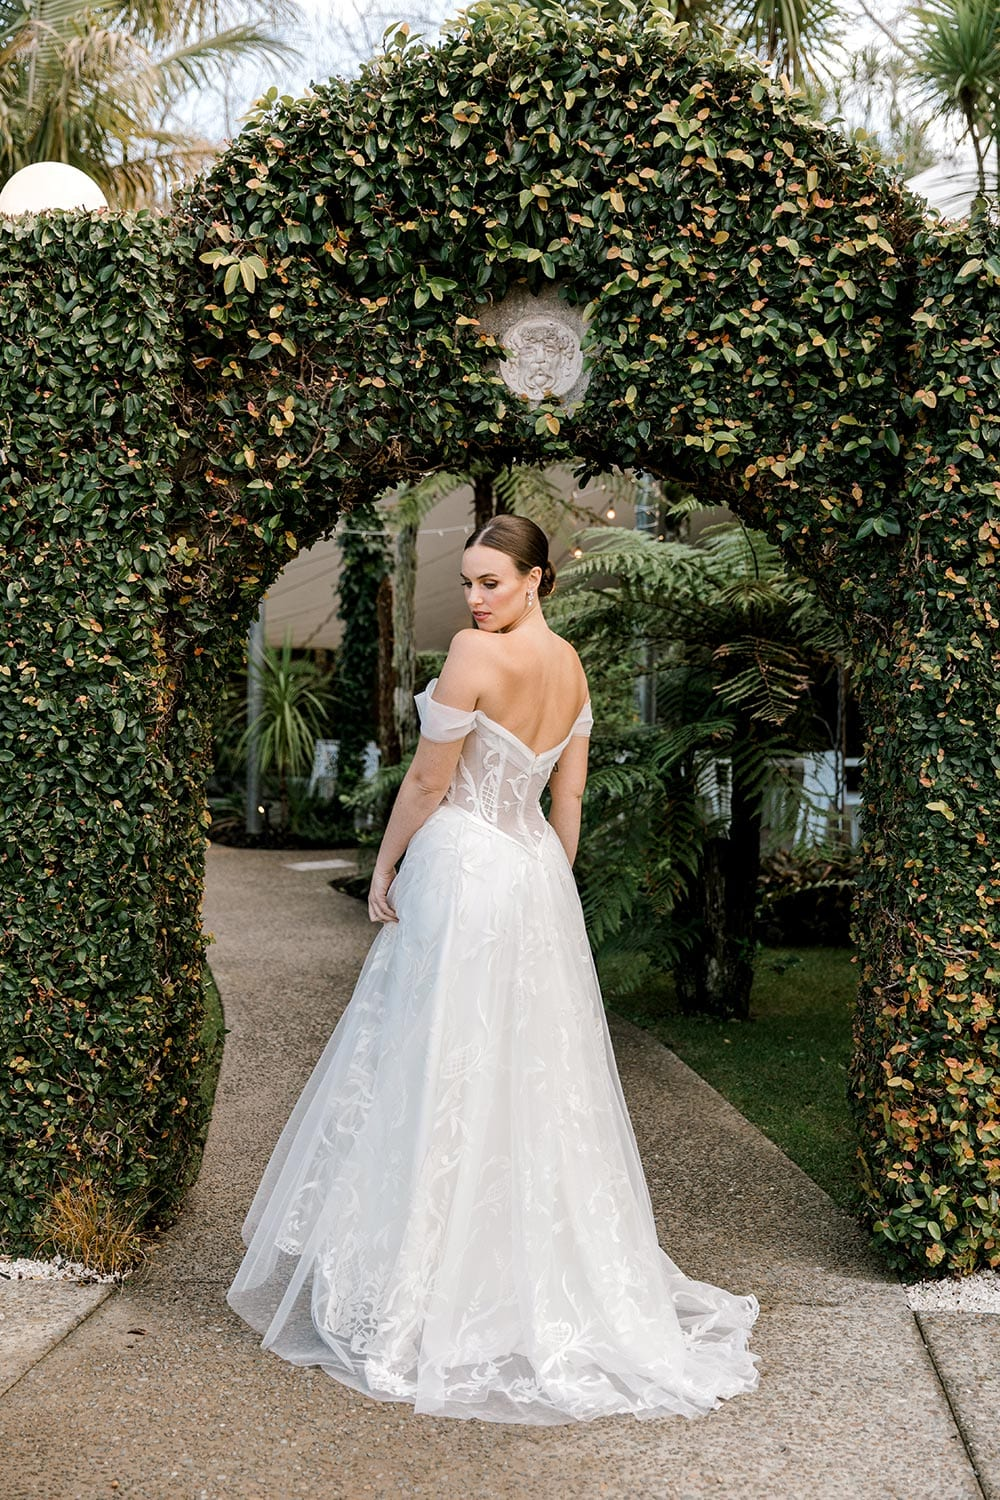 Zoe wedding dress by Vinka Design - a romantic & dreamy off-shoulder gown with a structured, boned bodice, a full lace & tulle skirt. Semi-sheer bodice with tulle off-shoulder detailing and satin belt. Worn in green garden archway, model looking back over shoulder.